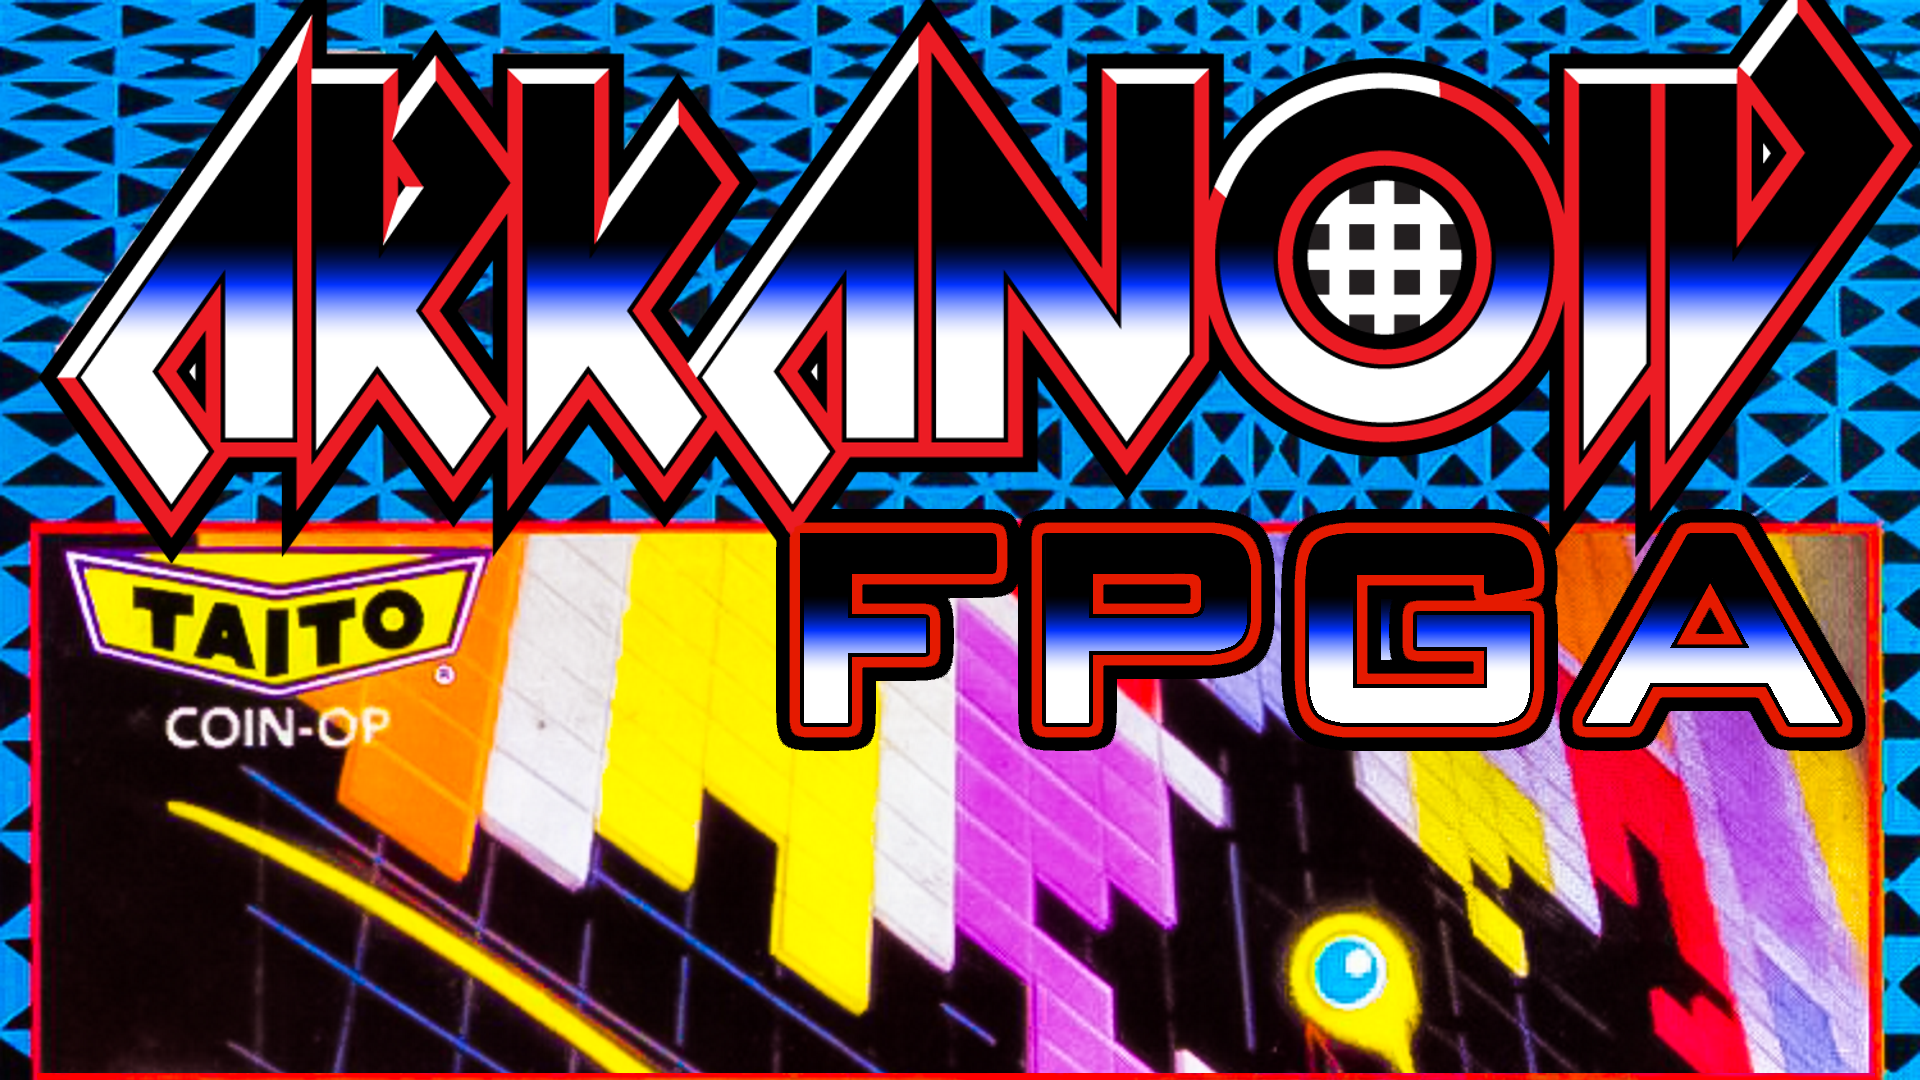 Arkanoid Arcade FPGA MiSTer Core Announced